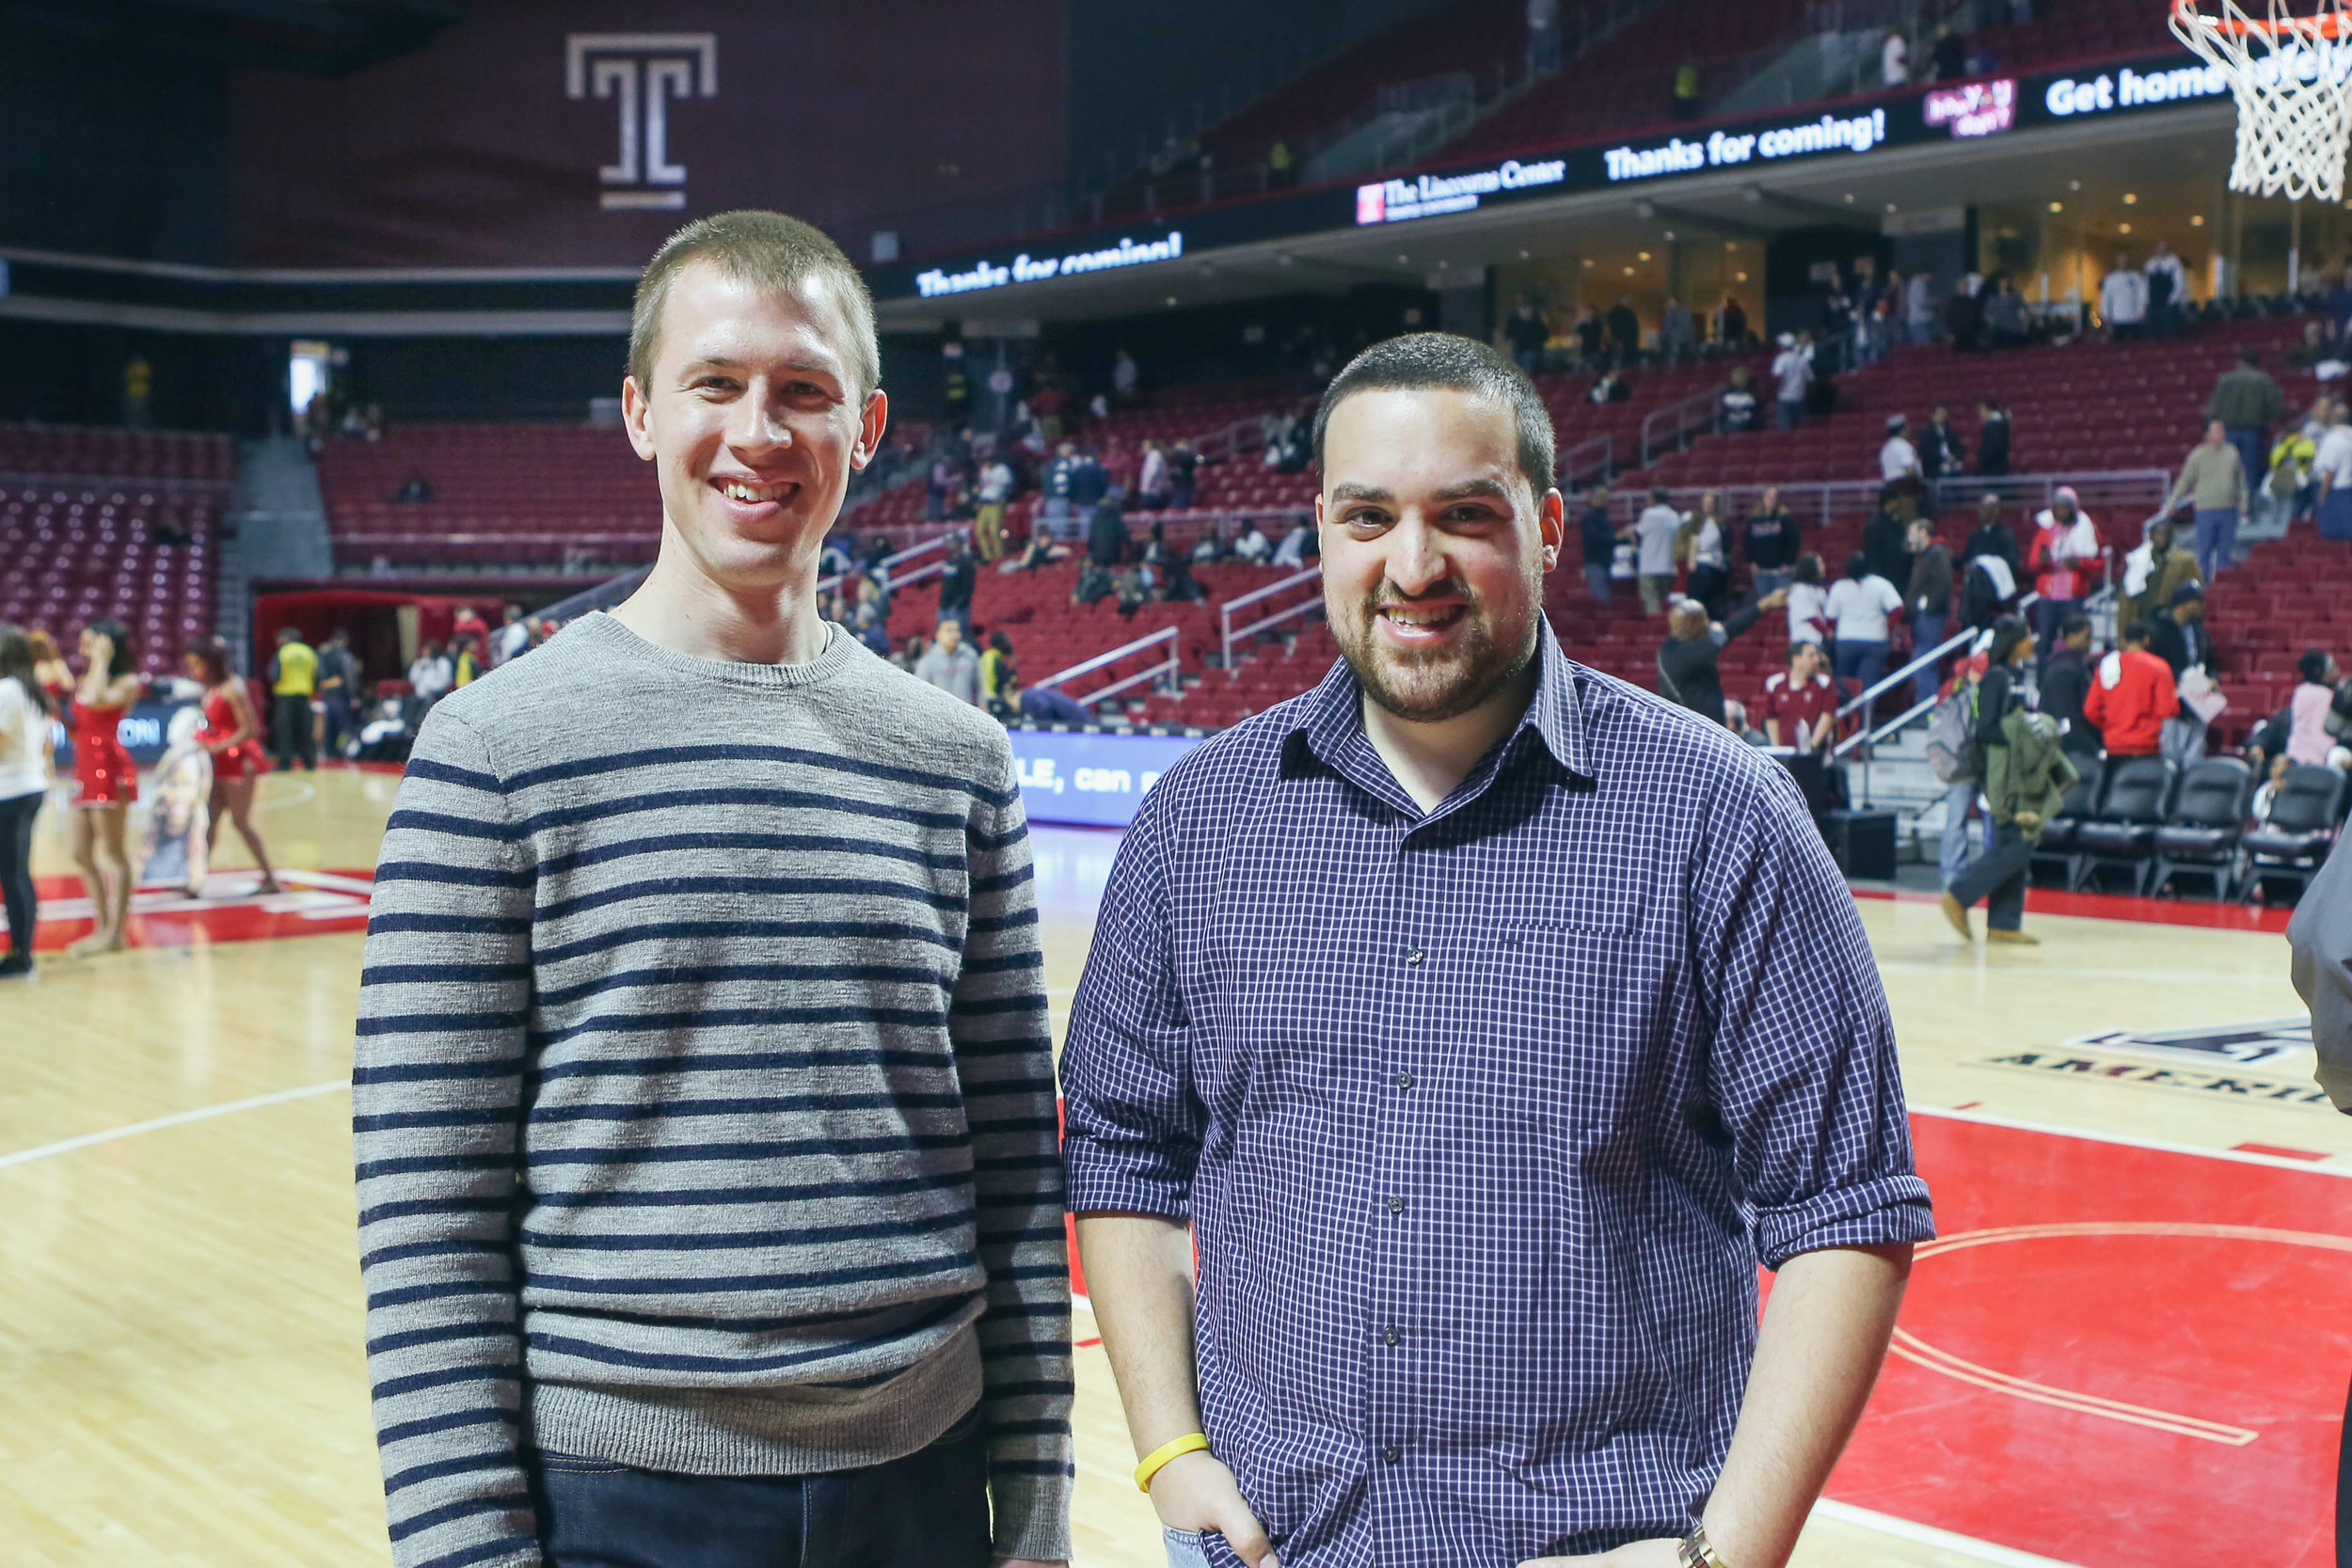 Patrick and Rob got their big break covering basketball for their alma mater, Temple University. Their weekly, 30-minute TV show on Comcast SportsNet would help them launch 20/20 Visual Media.